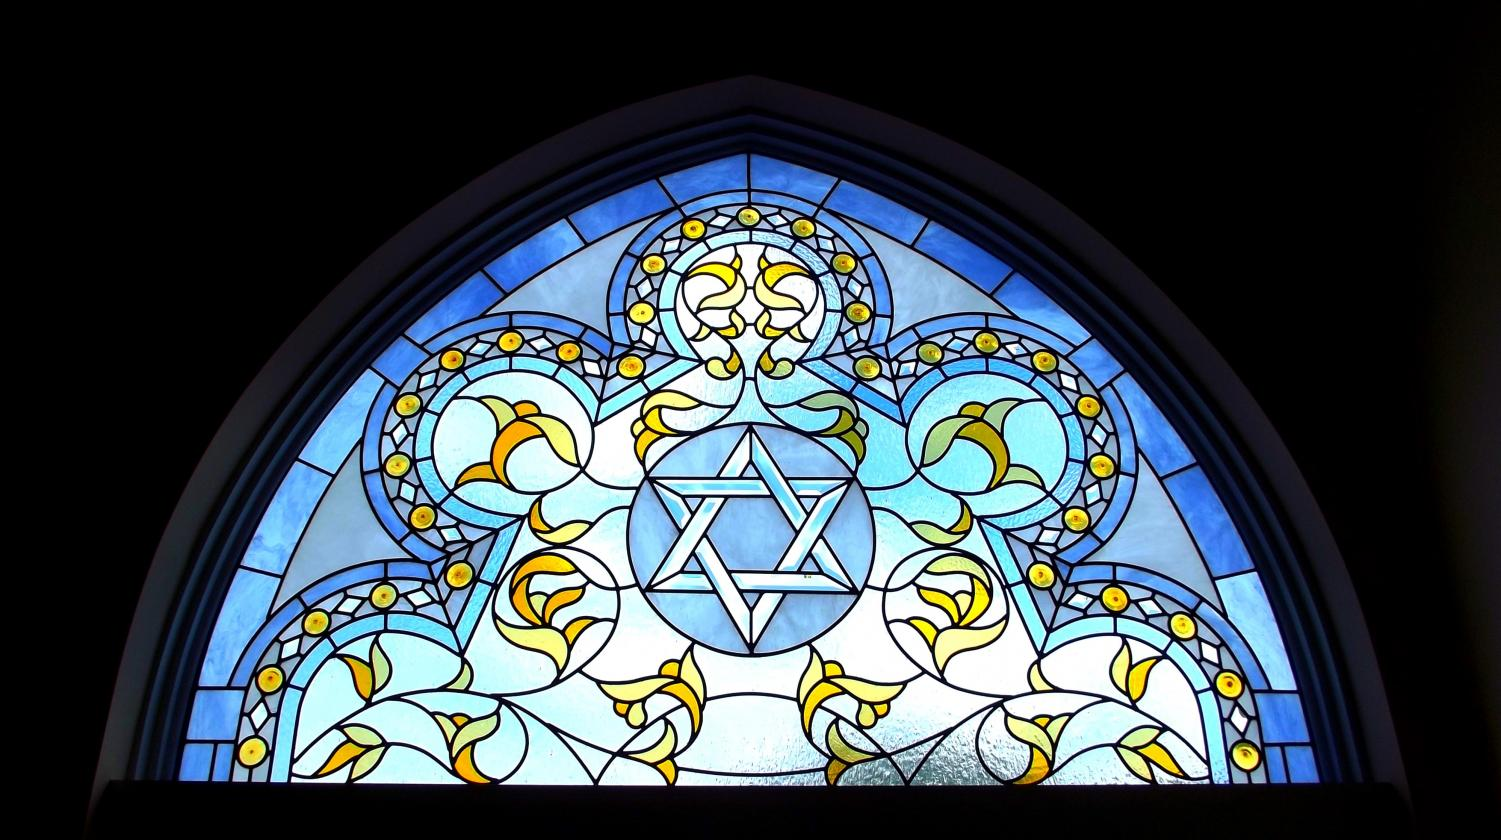 The Star of David within a synagogue.